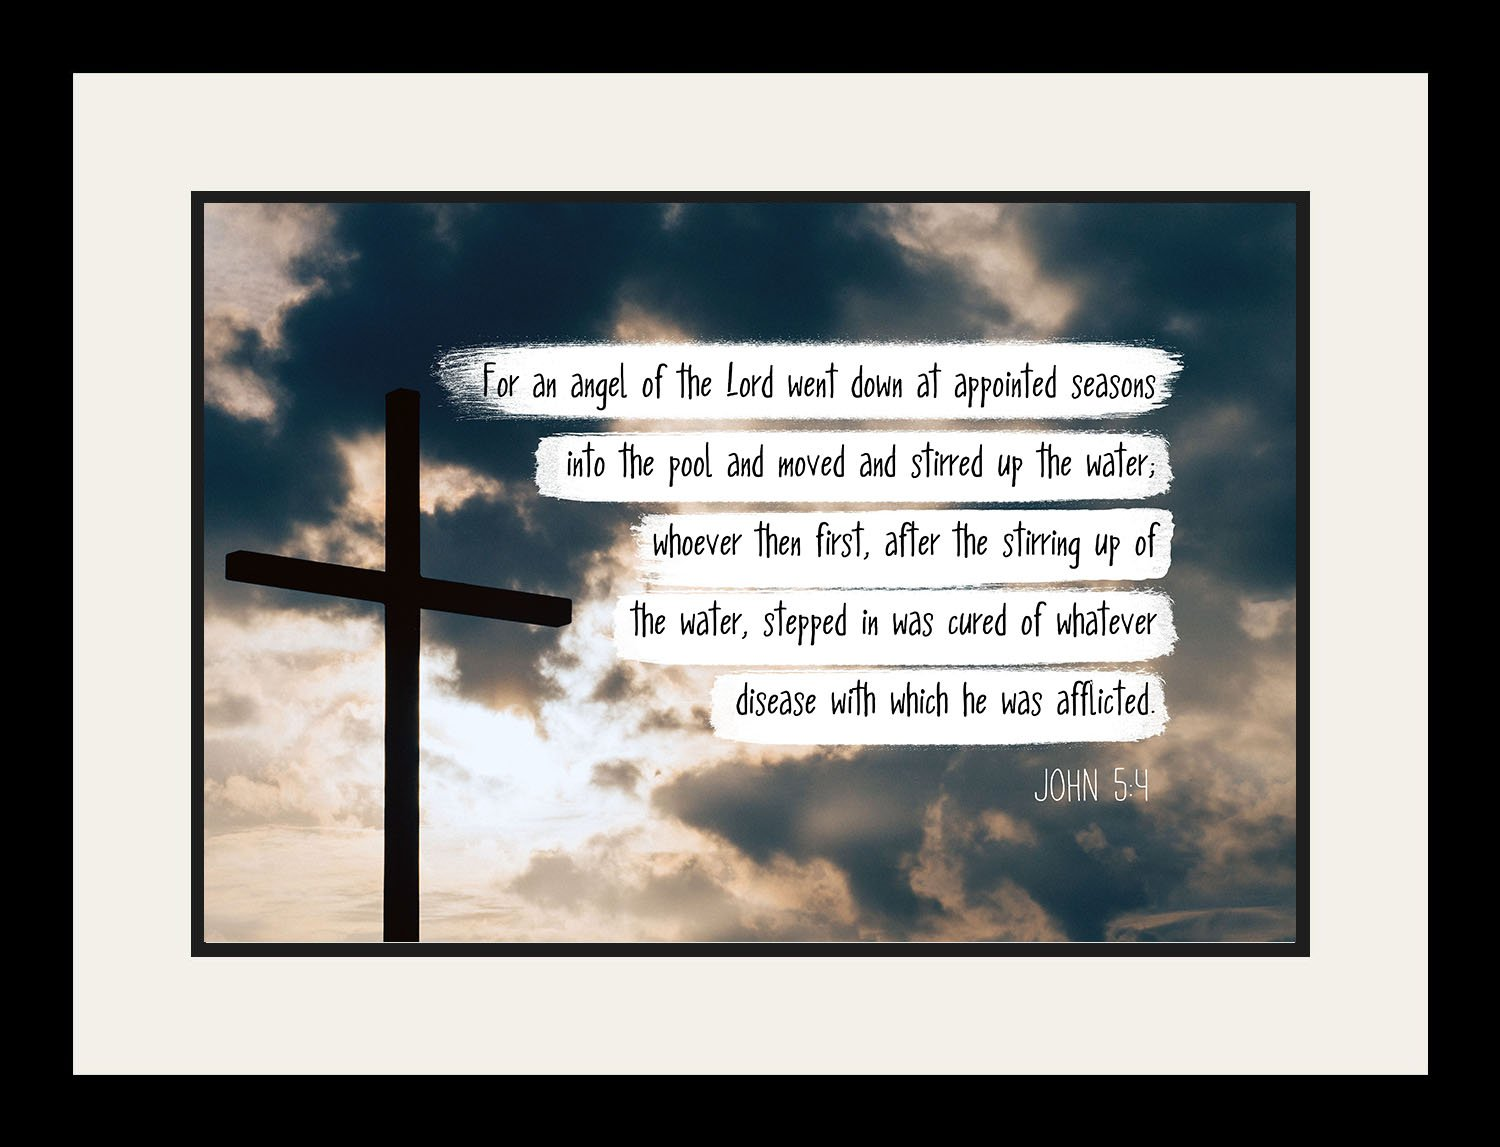 John 5:4 For an angel of the Lord - Christian Poster, Print, Picture or Framed Wall Art Decor - Bible Verse Collection - Religious Gift for Holidays Christmas Baptism (19x25 Framed)